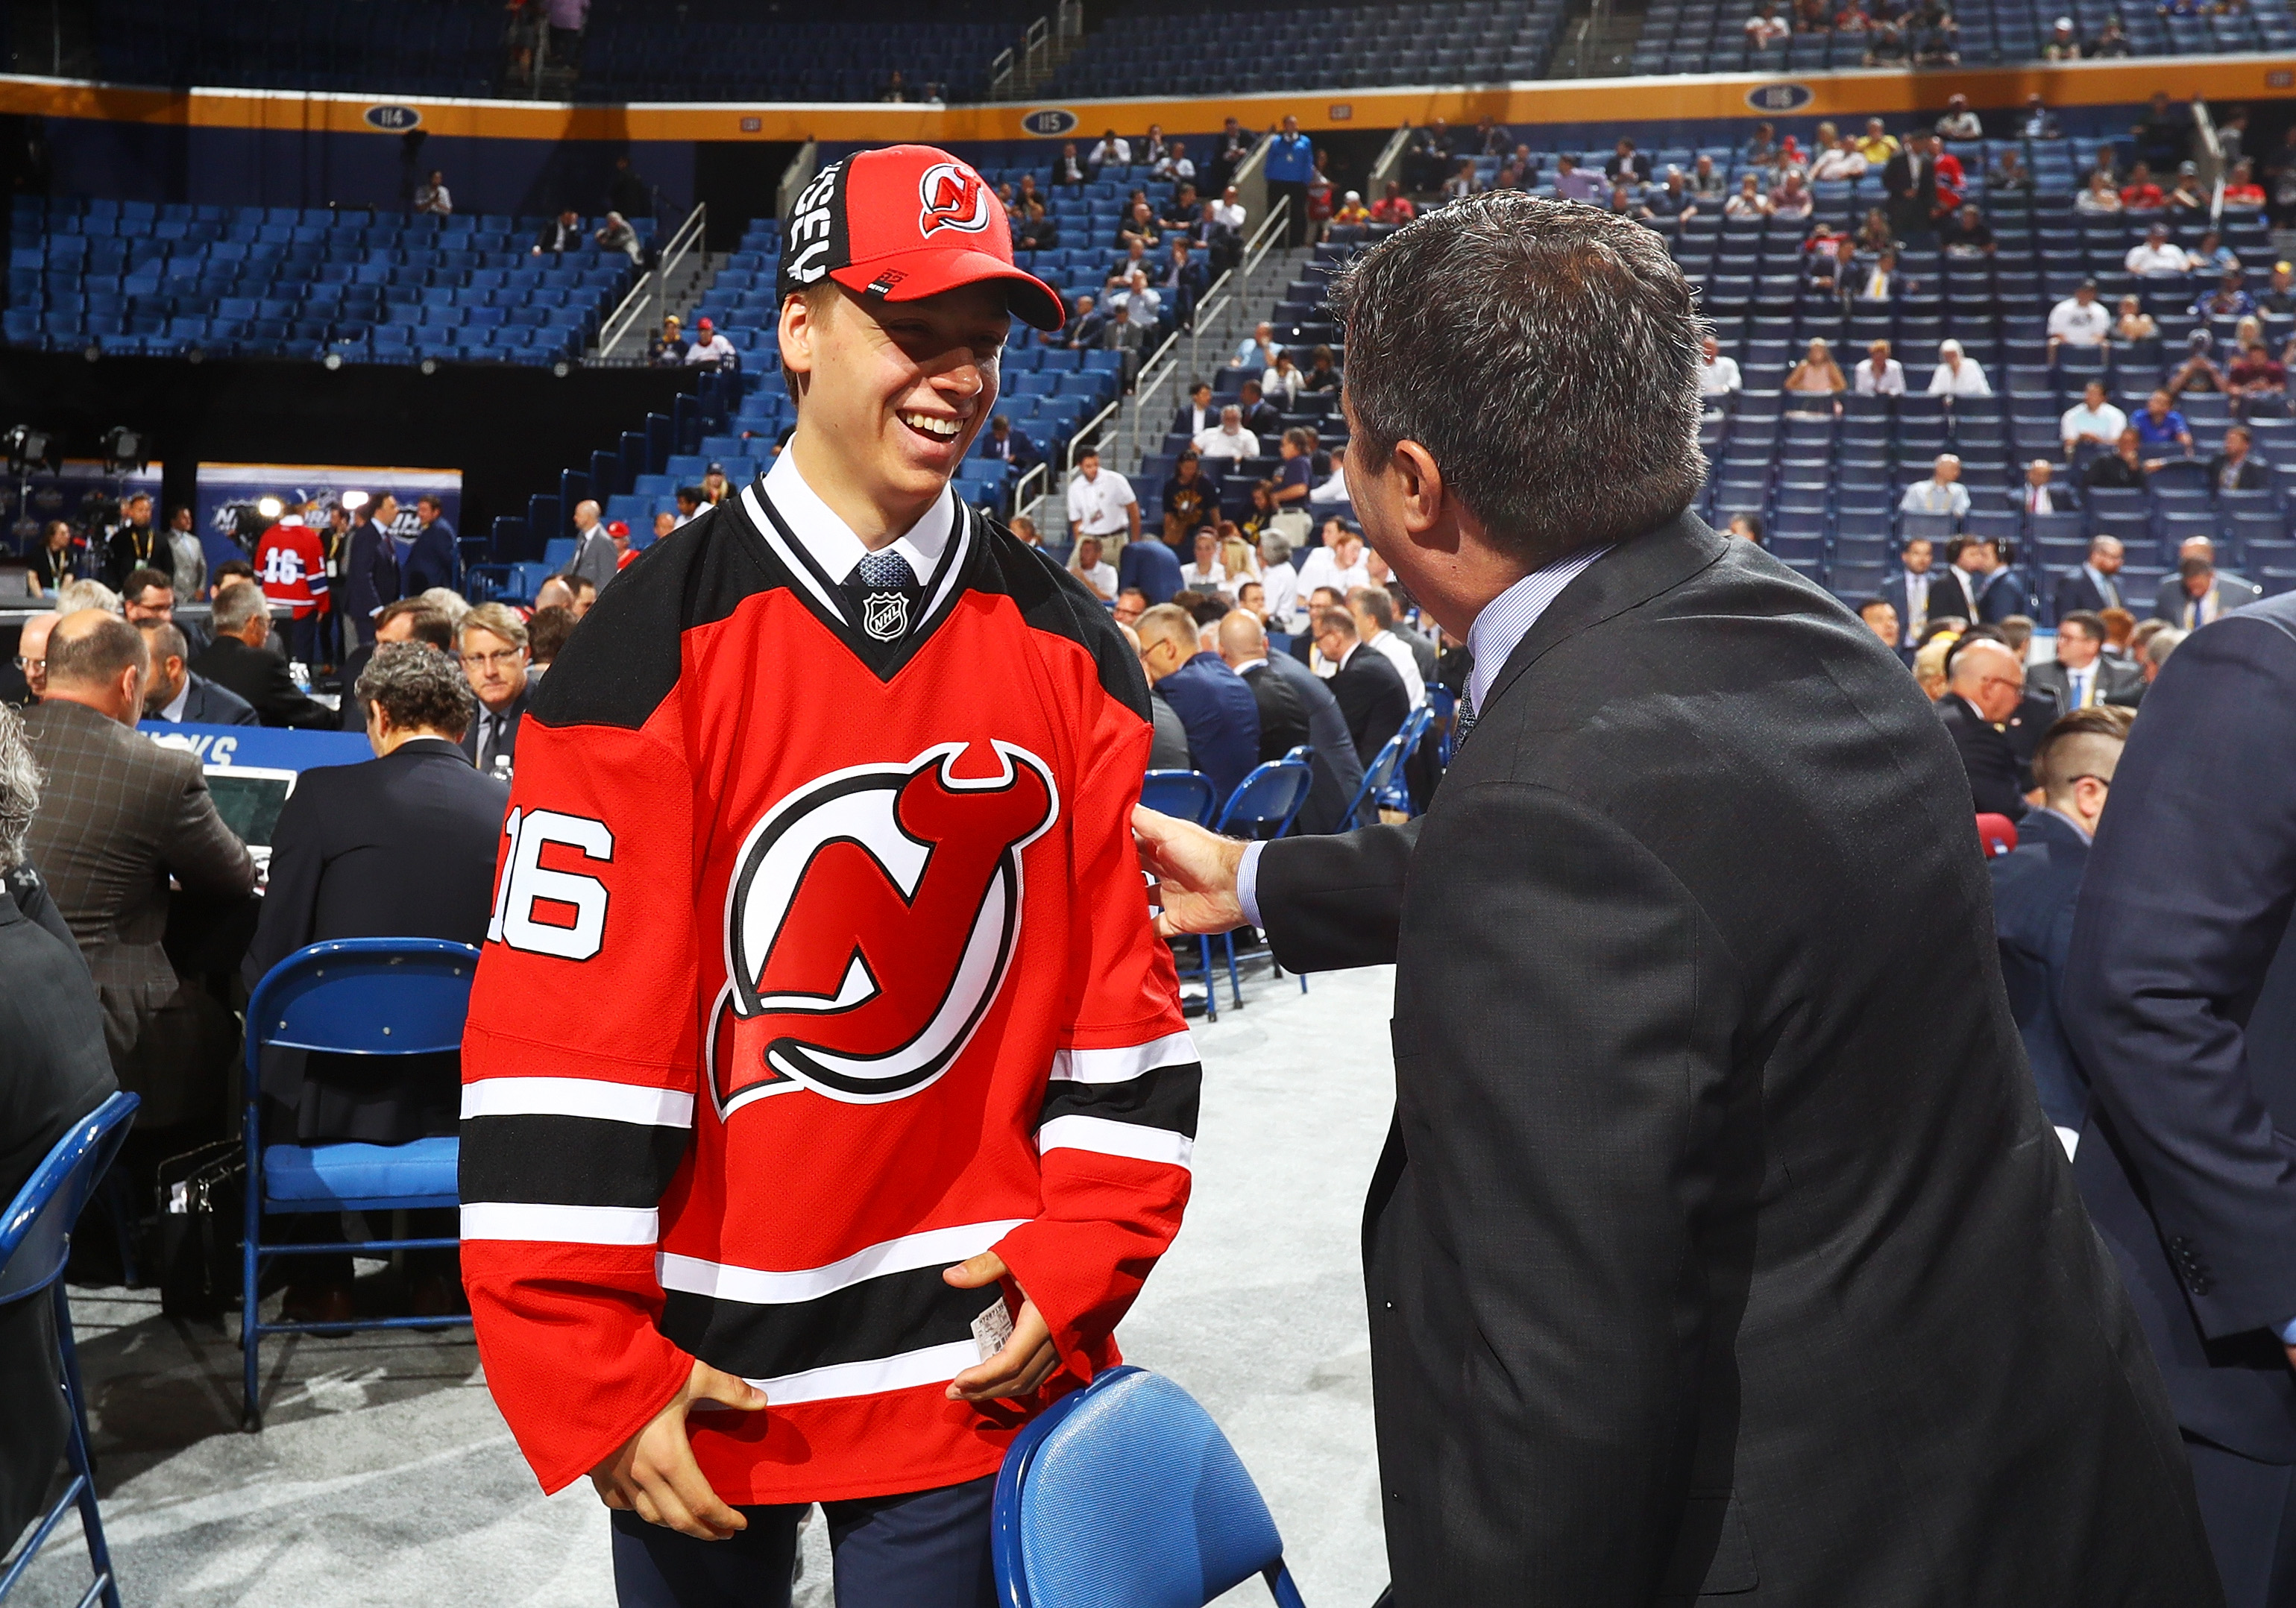 Jesper Bratt flashes a big smile after getting picked by the Devils in the sixth round.